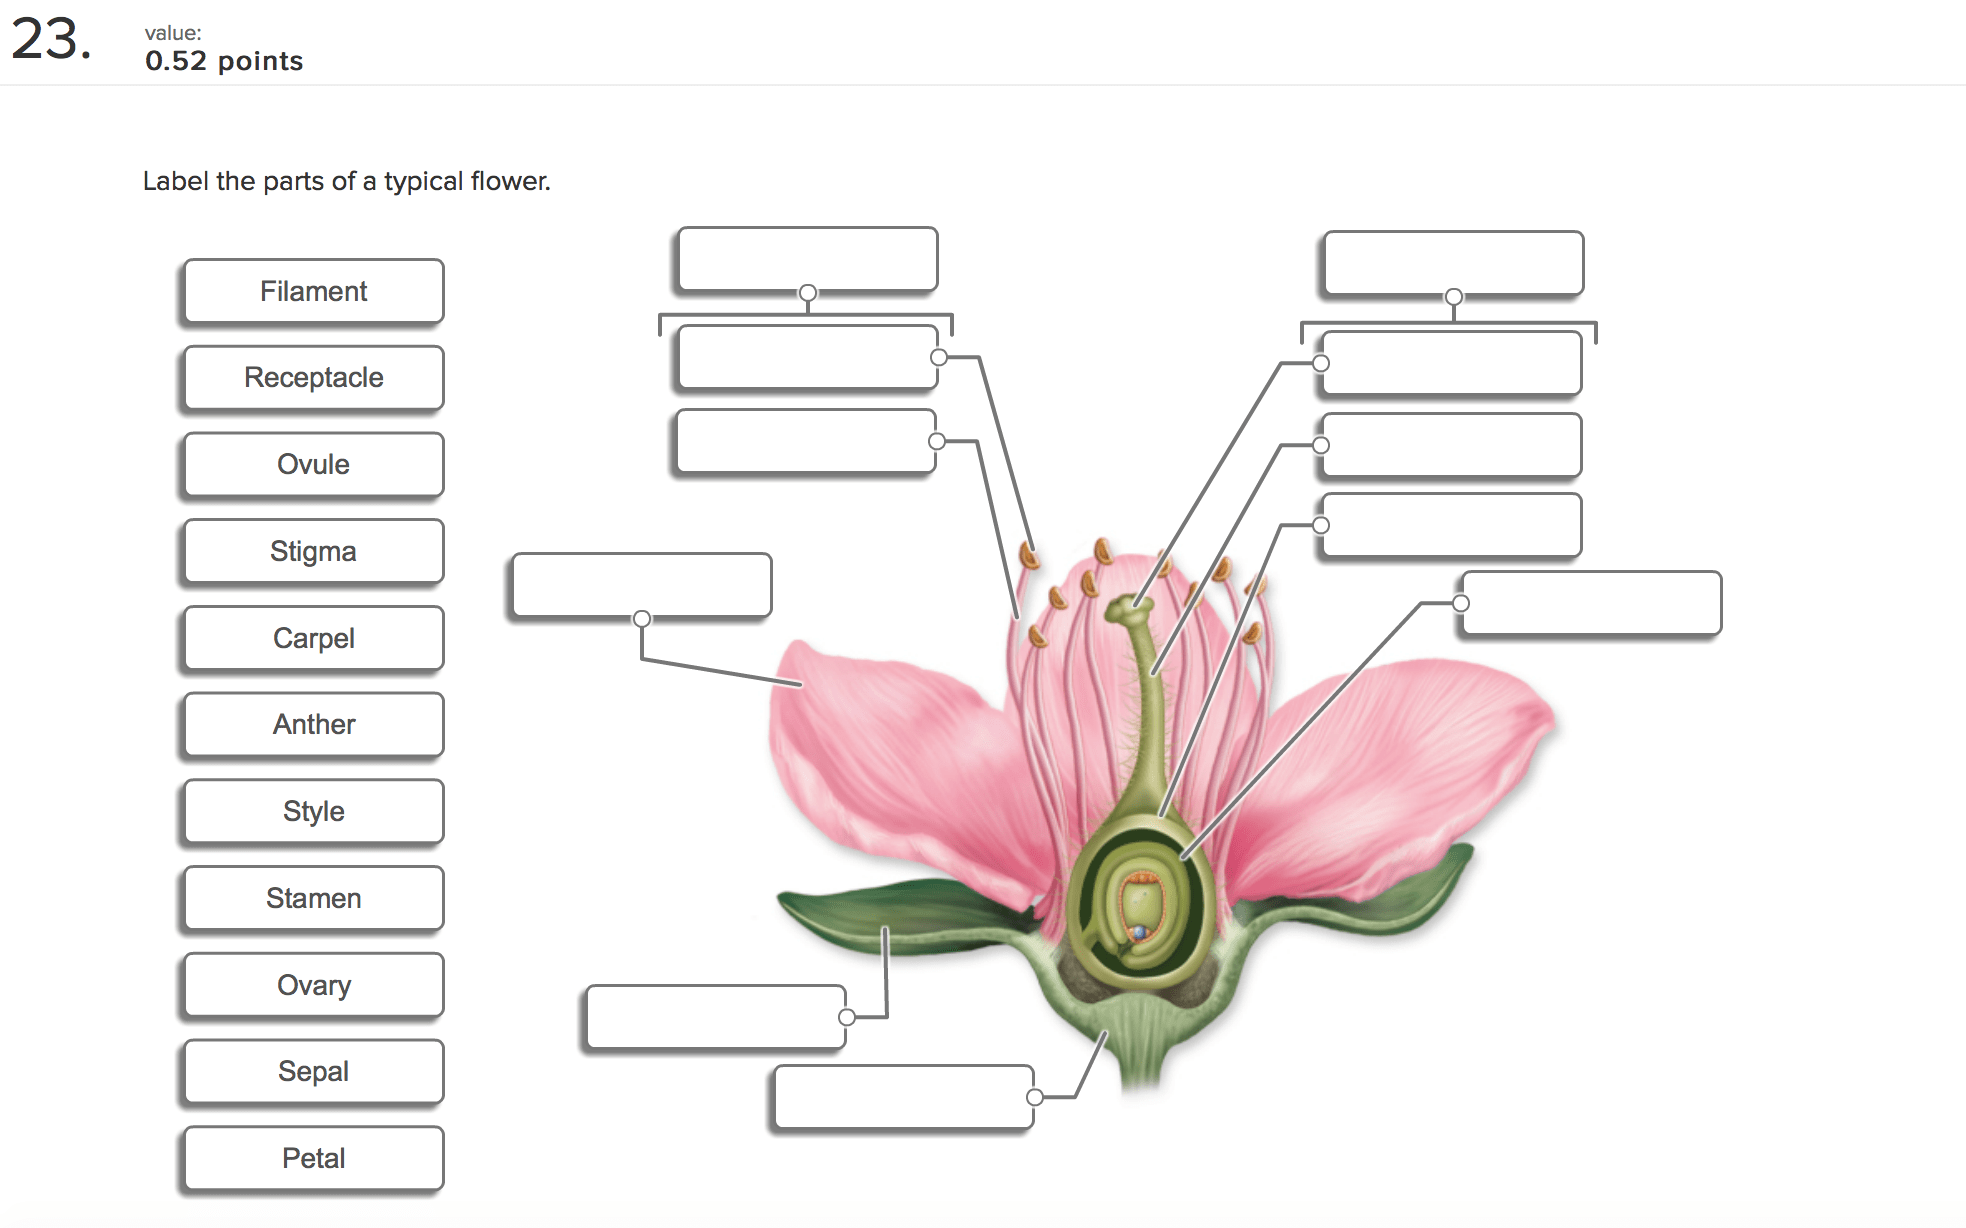 Flower Parts And Functions Worksheet